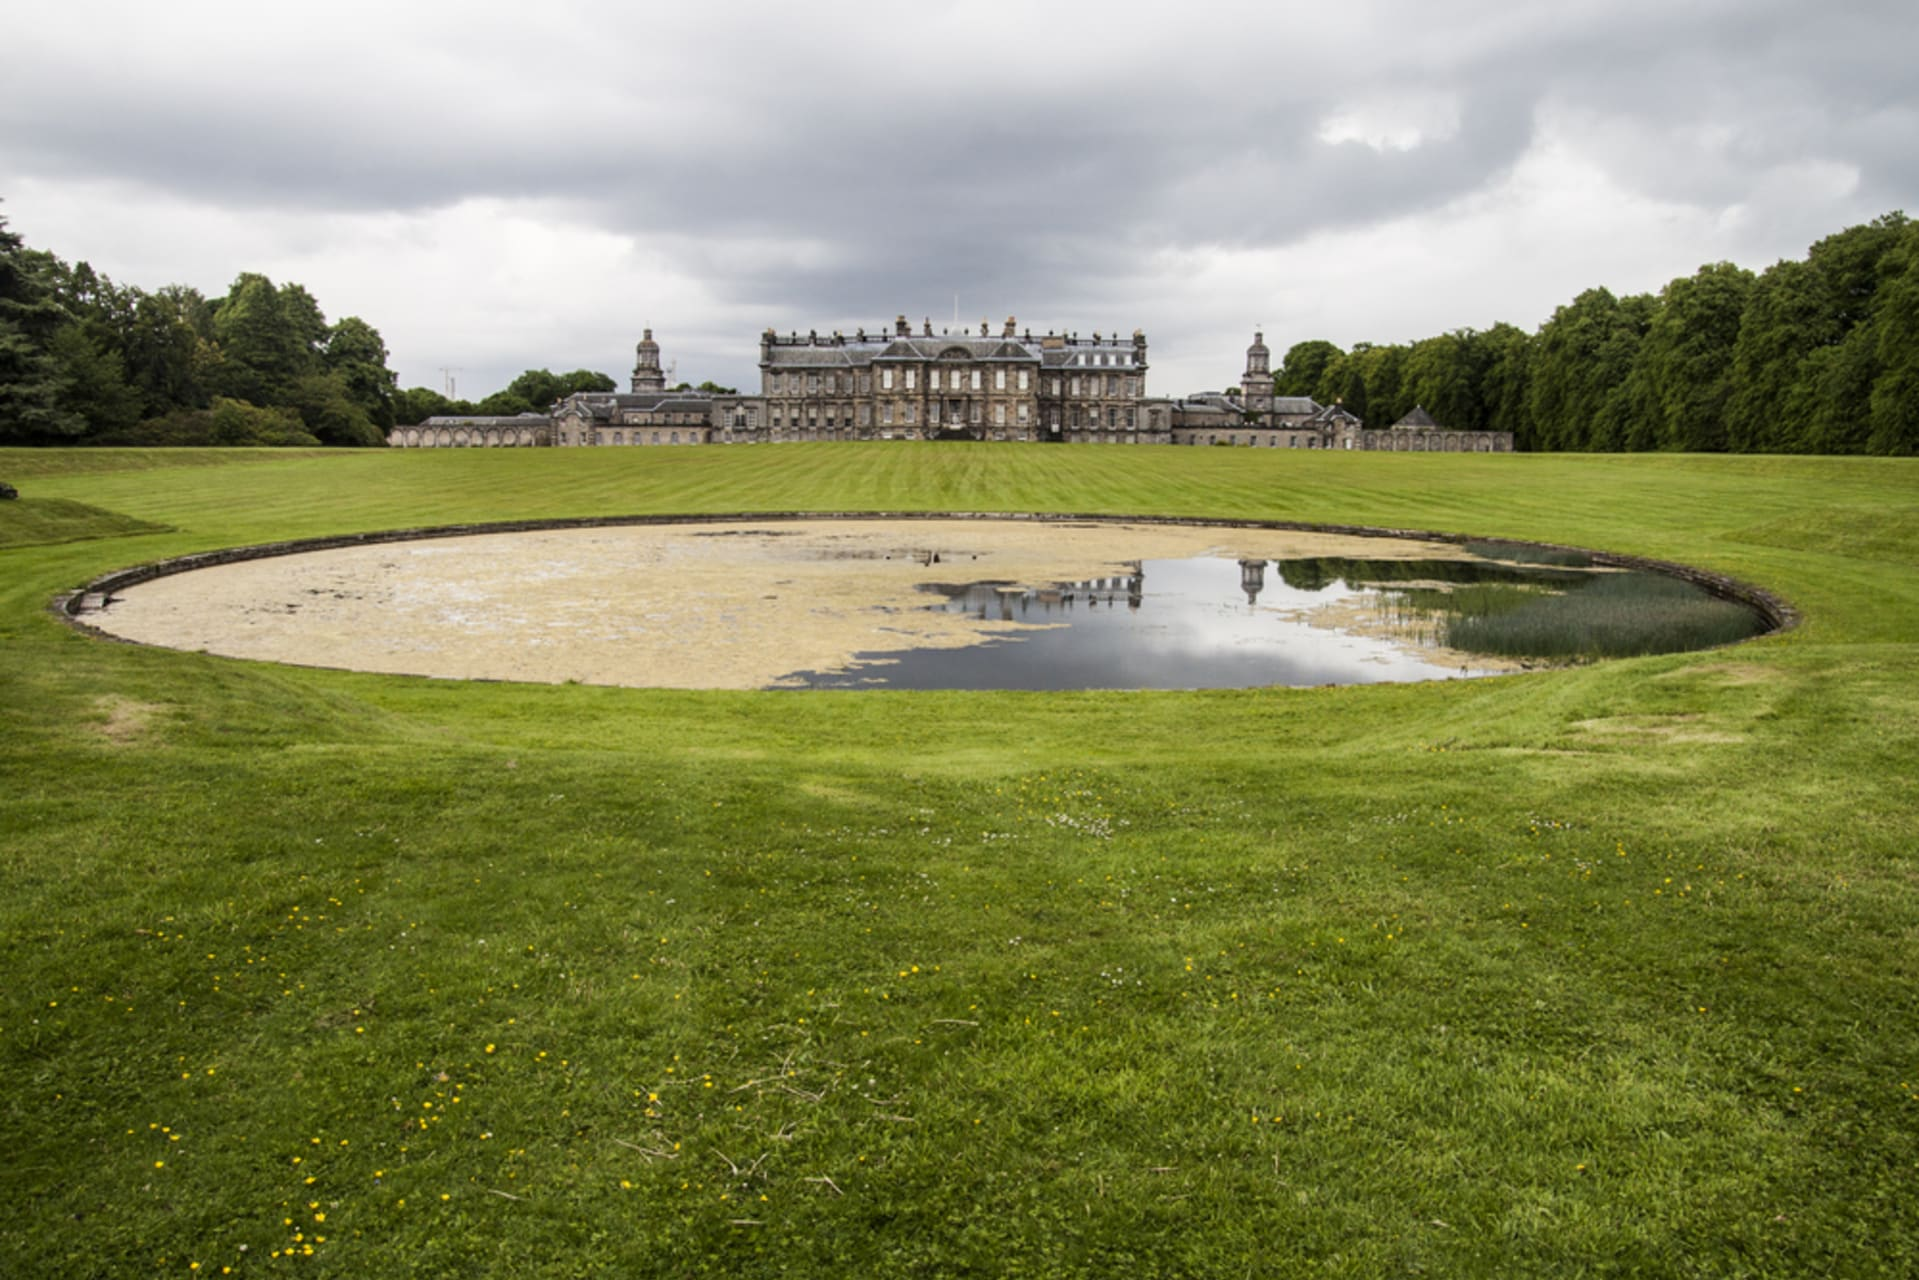 Central Scotland - Visit the grounds of Hopetoun House - Scotland's finest stately home